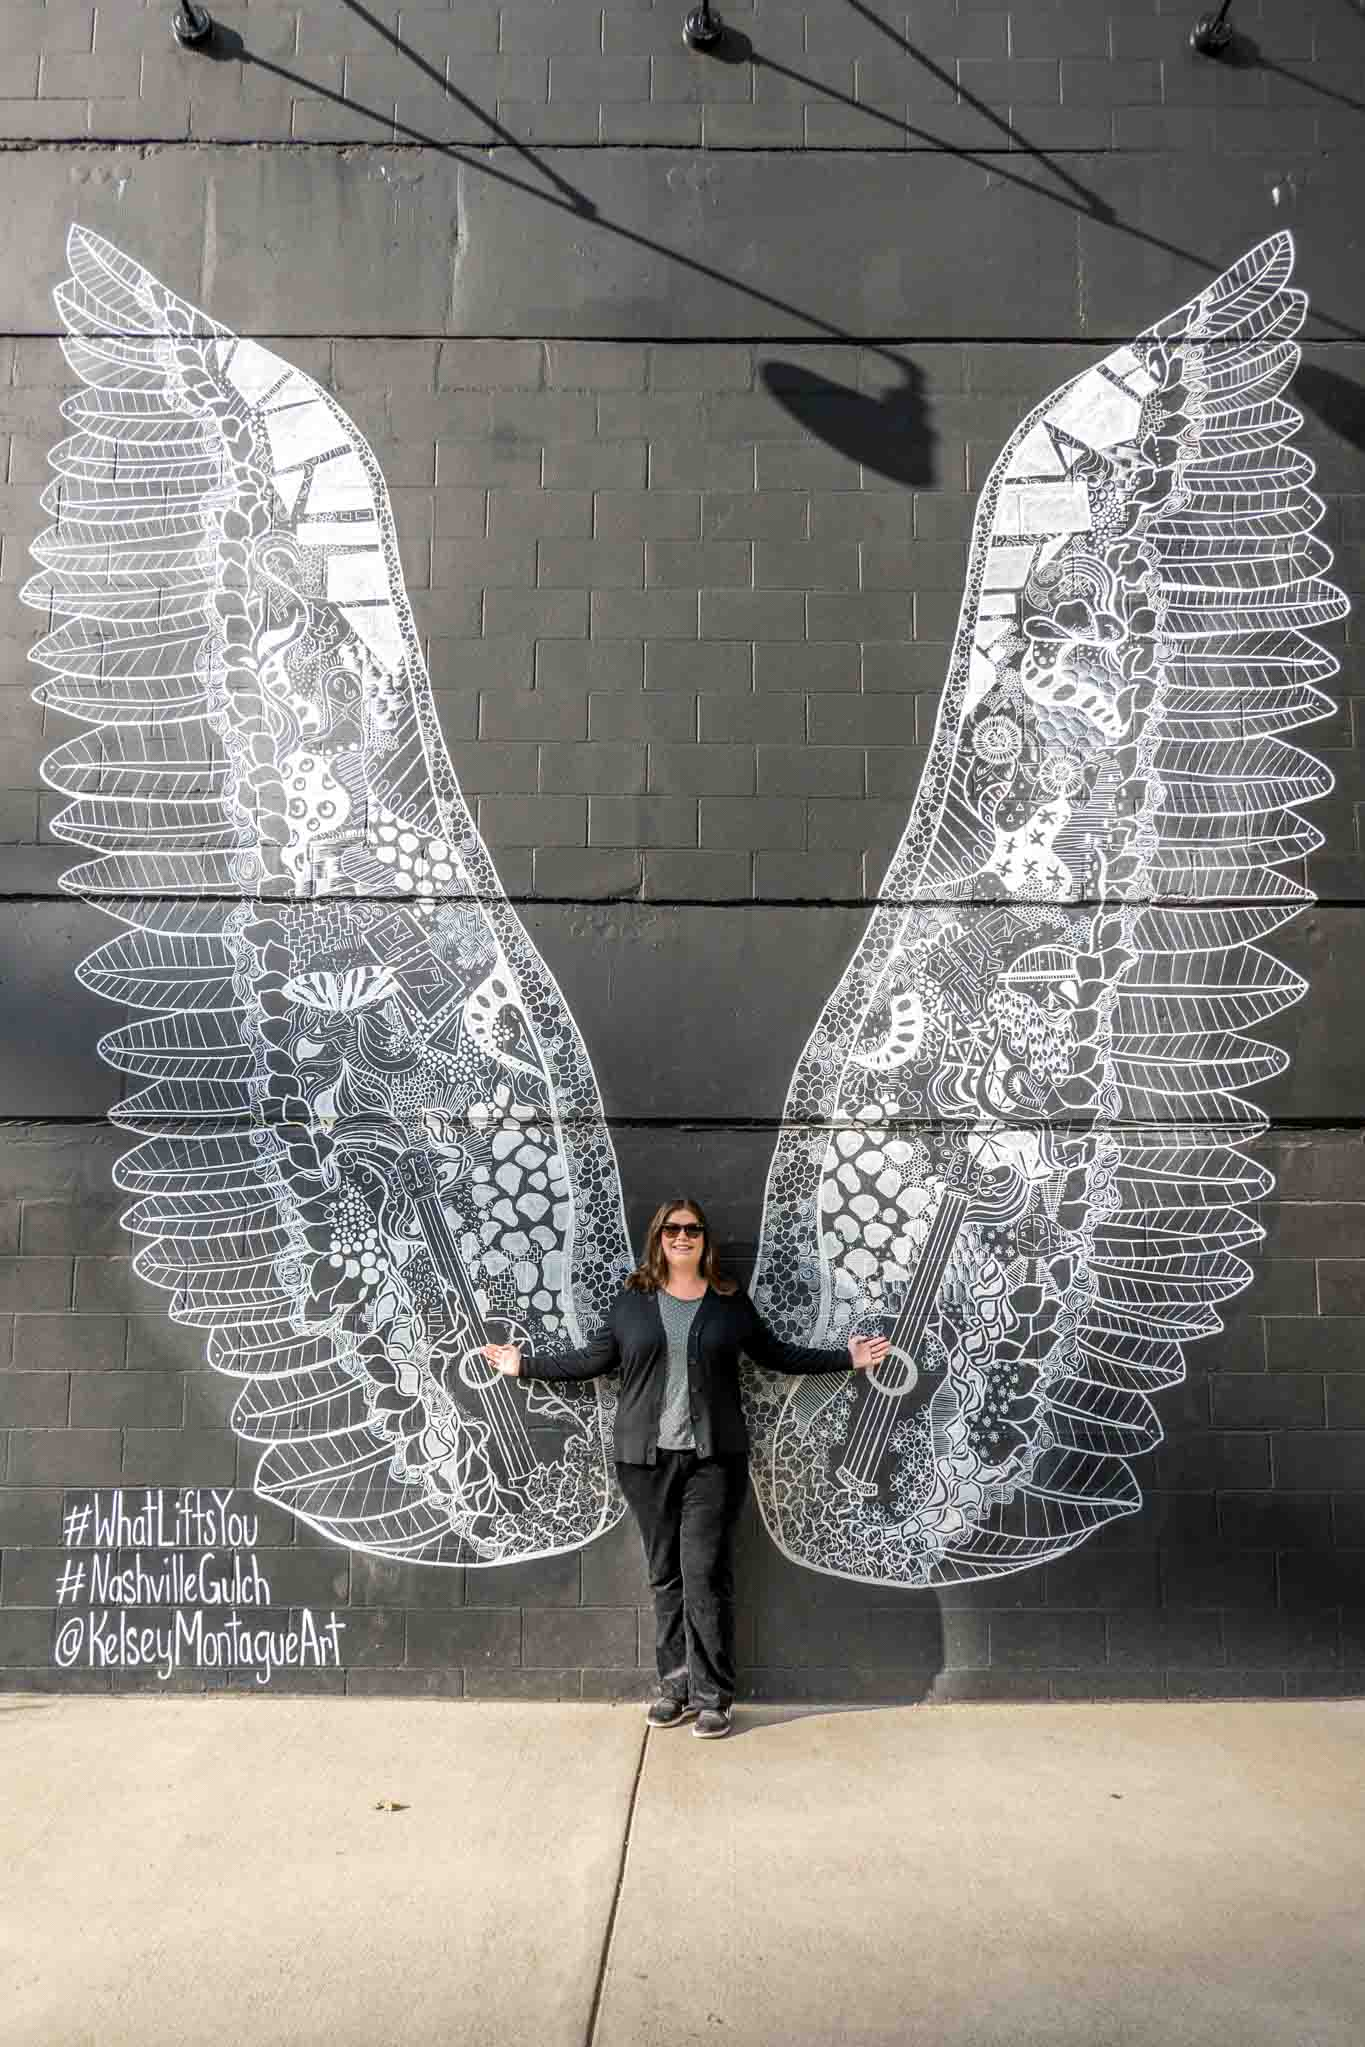 Person posing with mural of large white wings